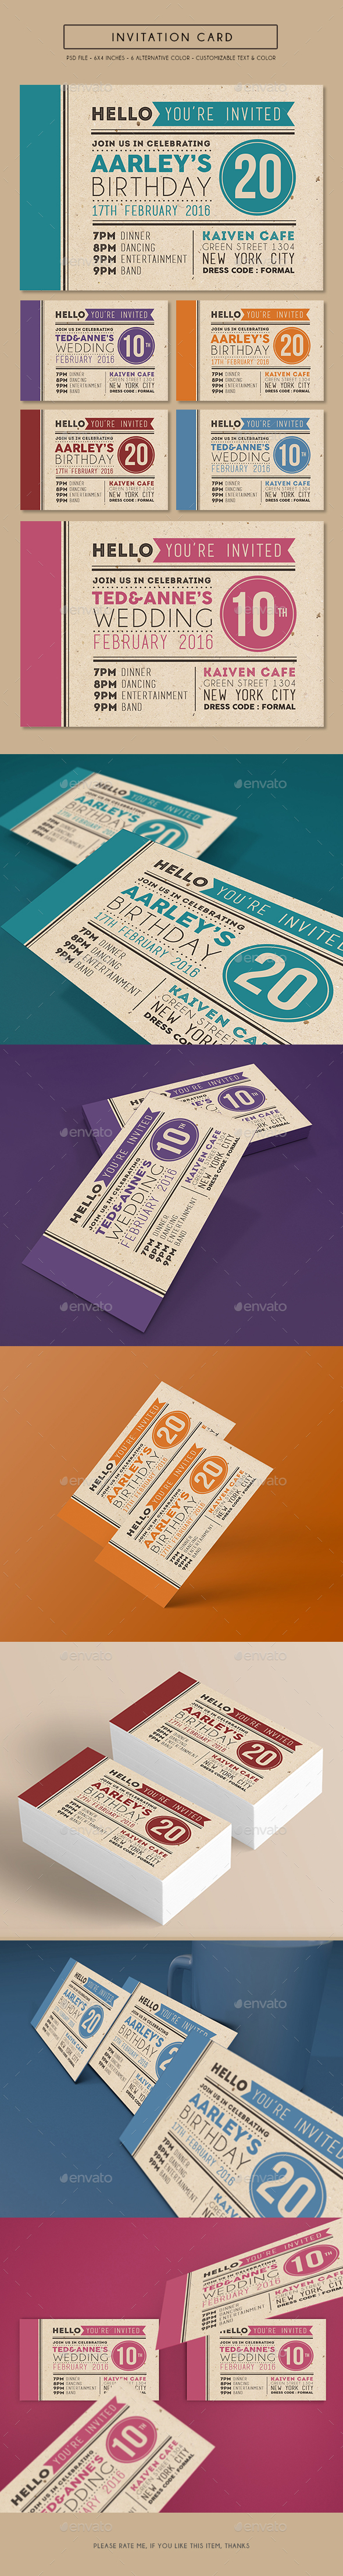 Colorfull Invitation Card